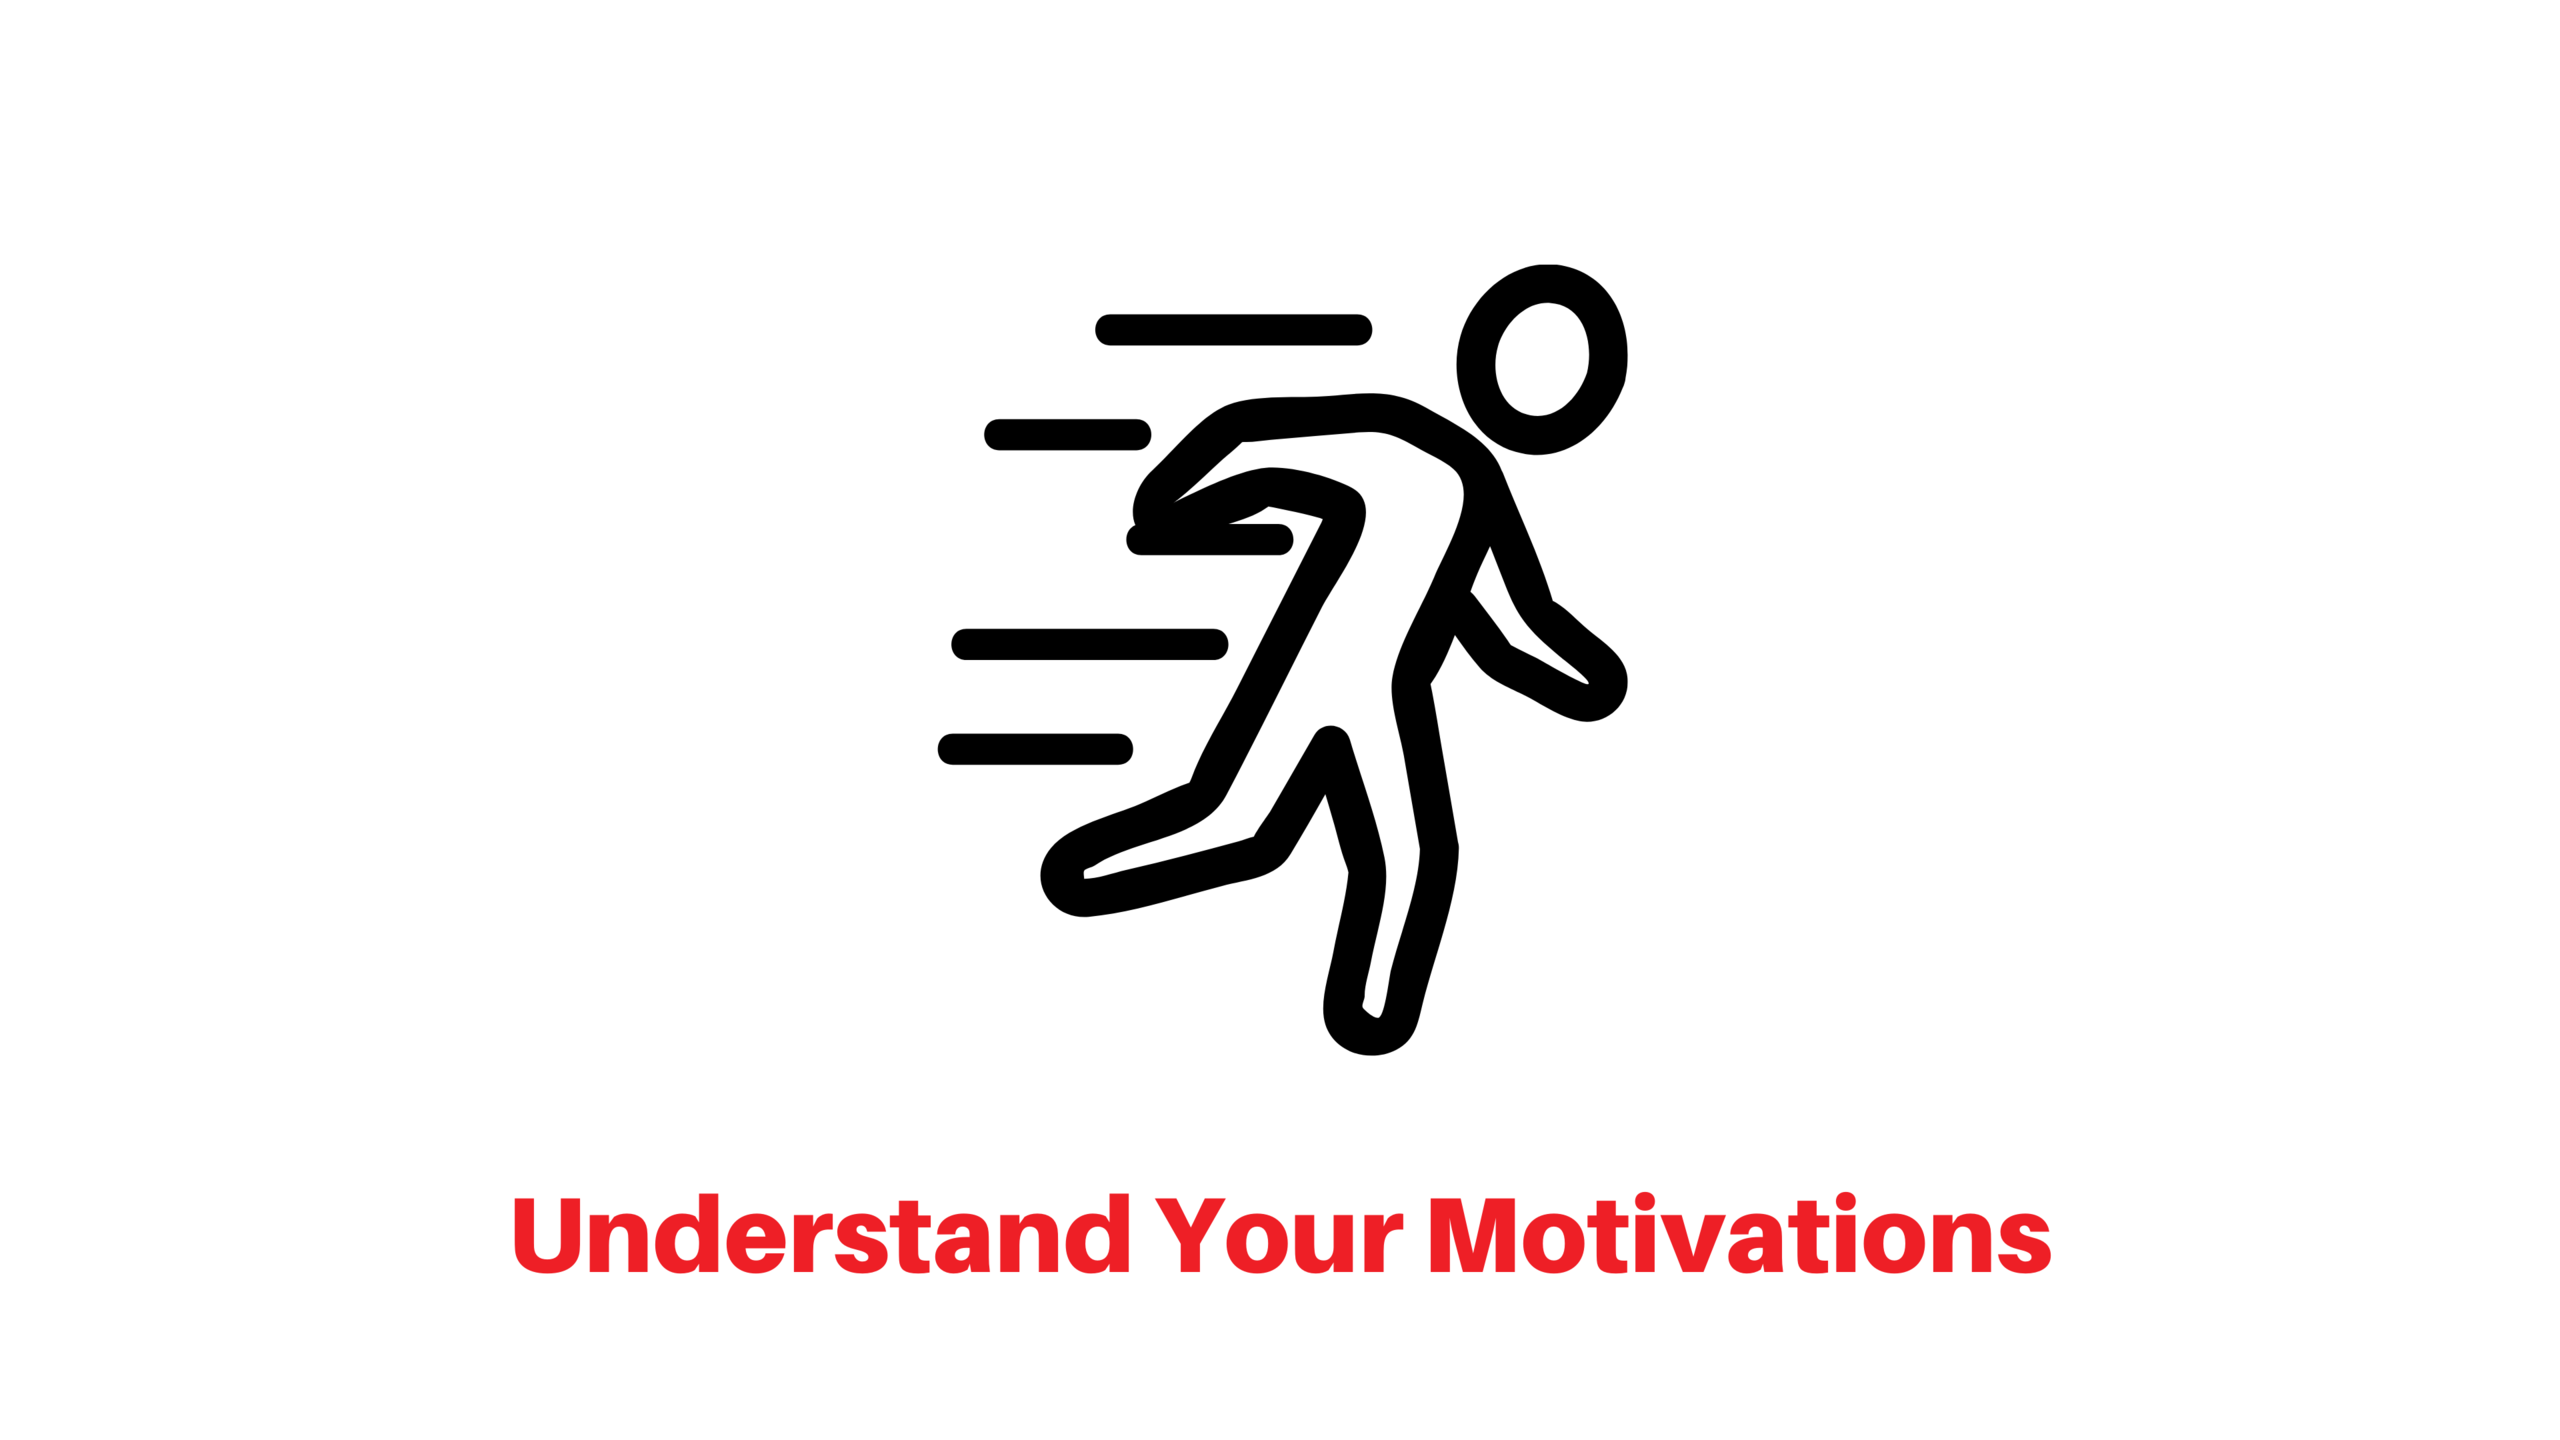 Understand your motivations icon